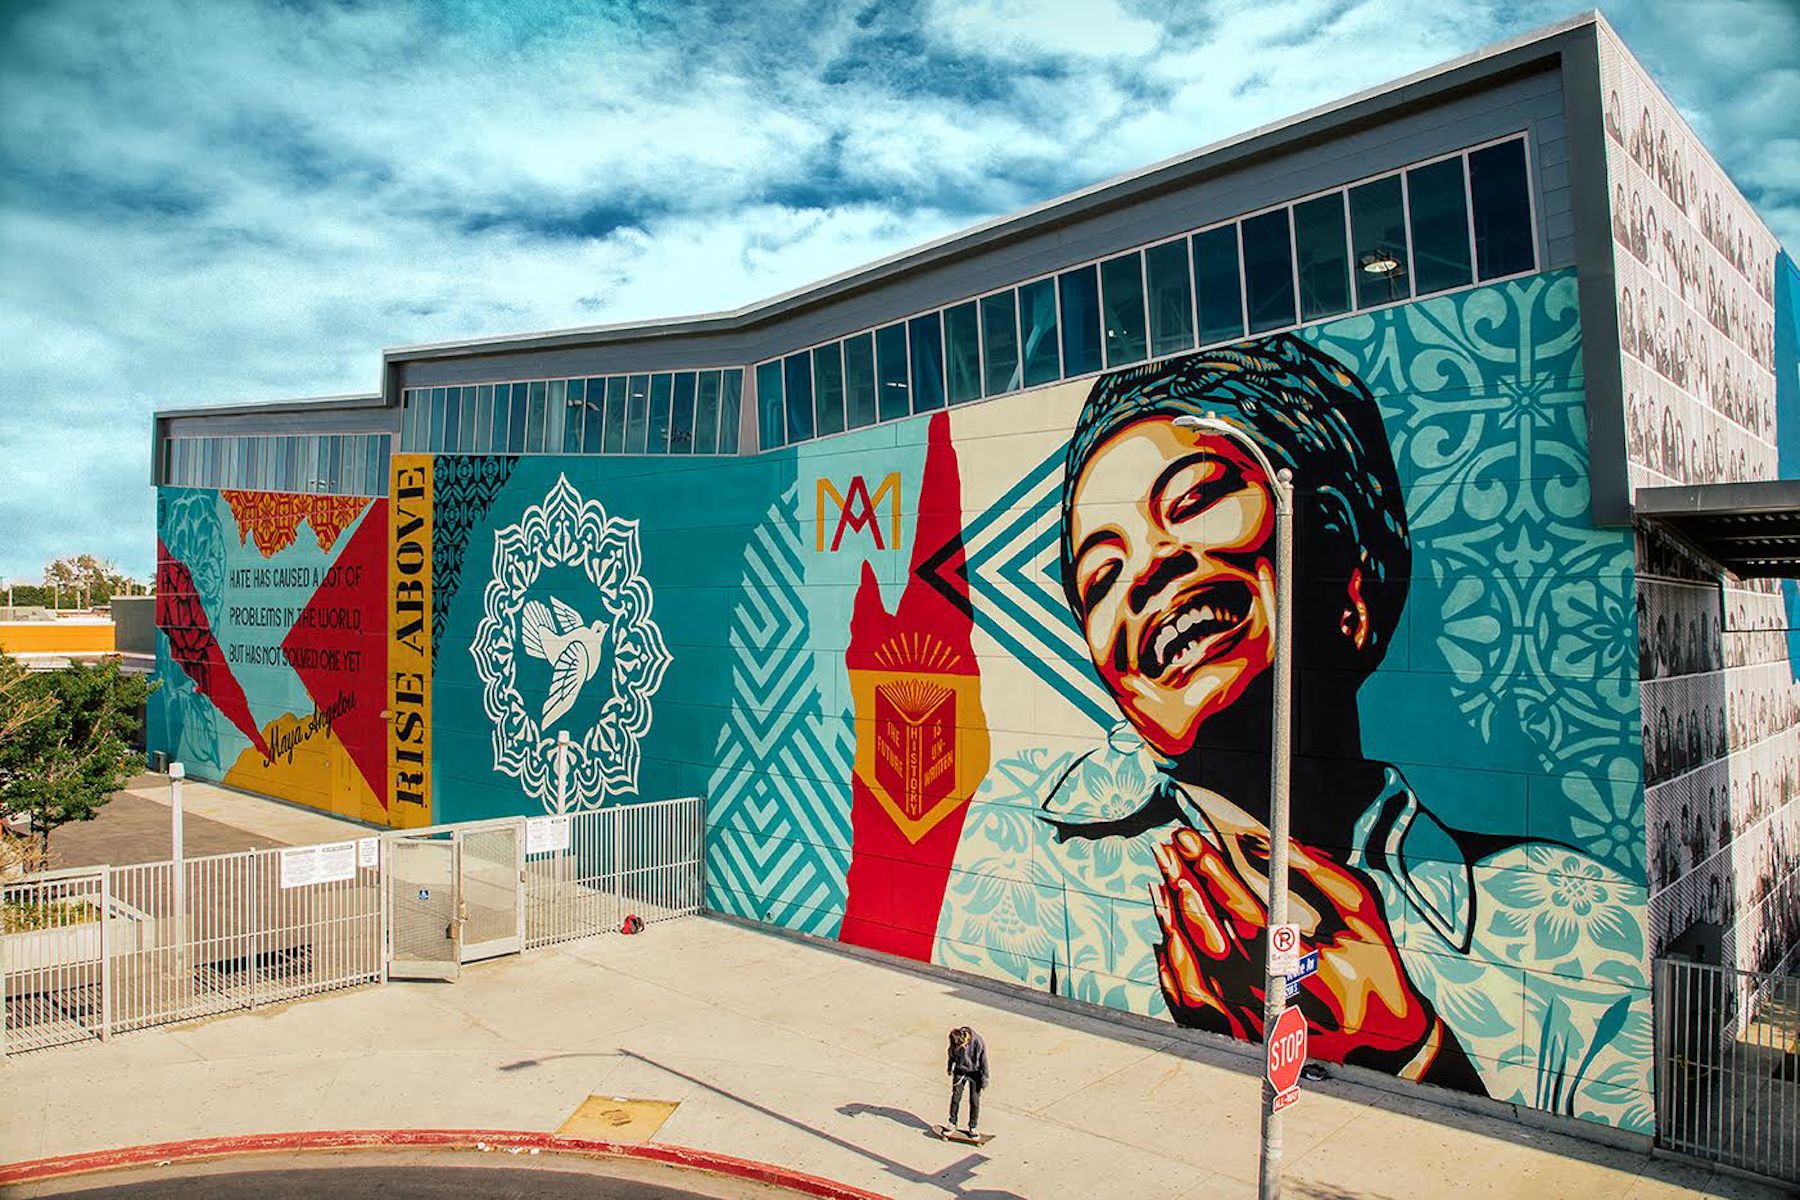 Street Artists dedicate Murals to Maya Angelou, Maya Angelou